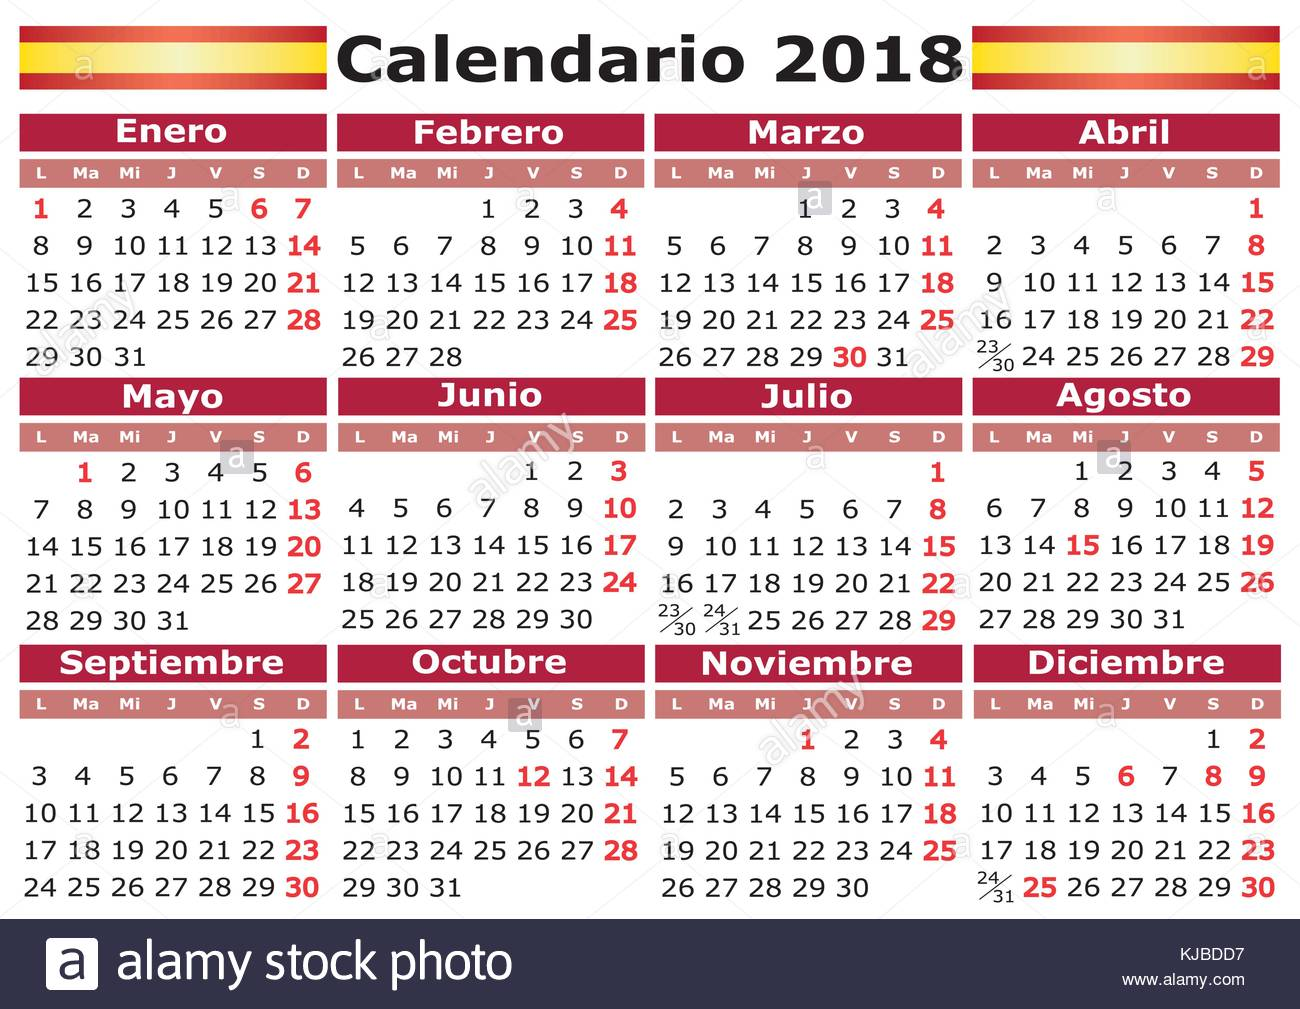 calendario 2018 spanish calendar with festive days pocket calendar calendario de bolsillo week starts on monday